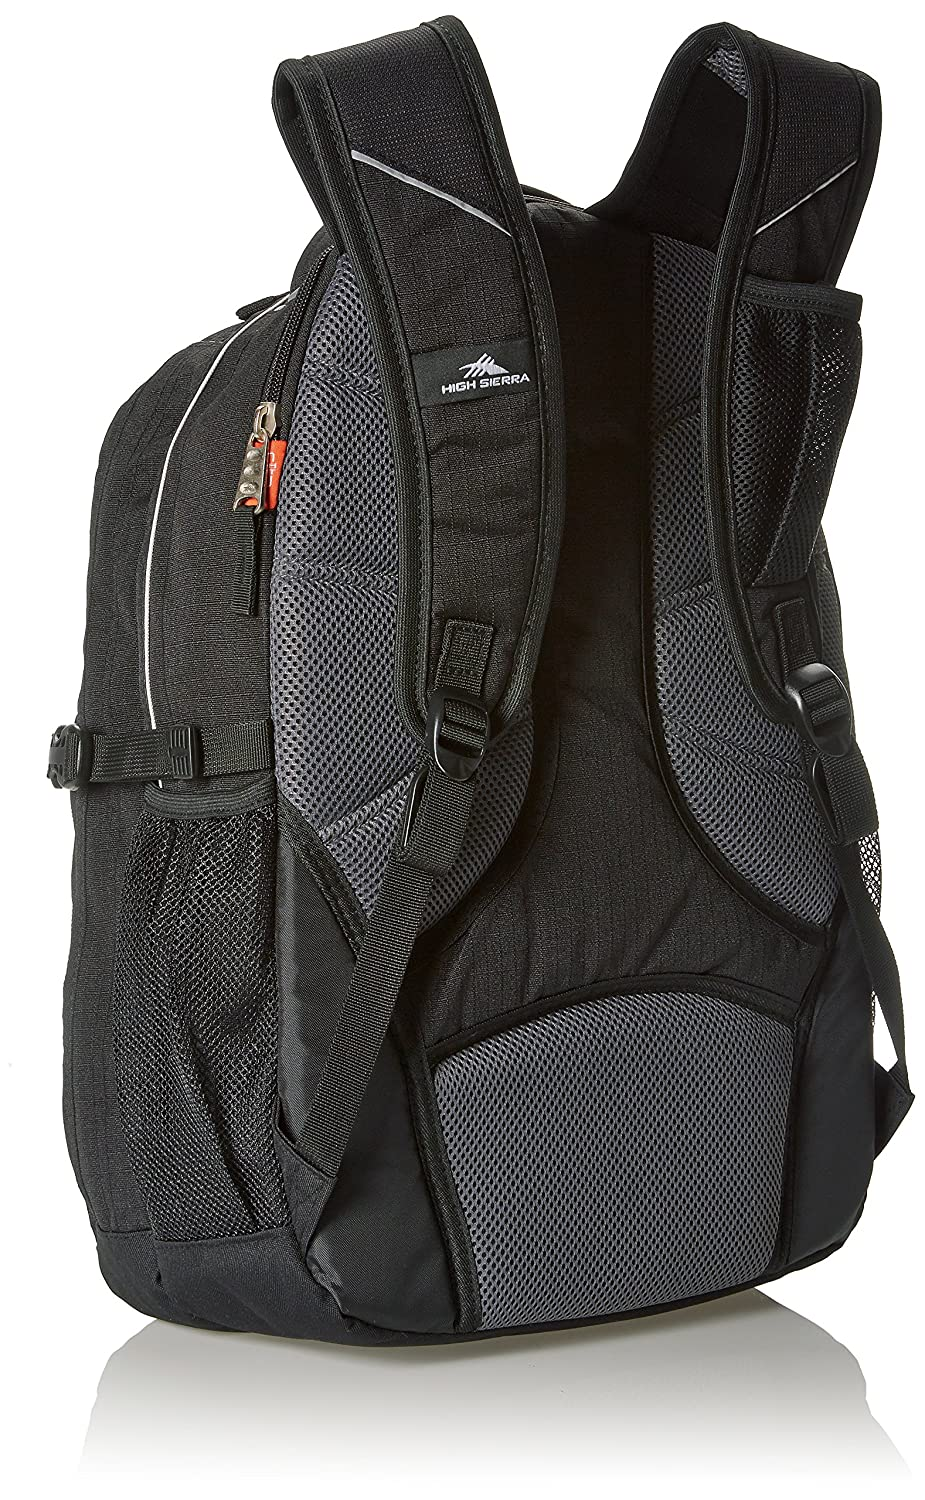 https://go.redirectingat.com?id=120386X1581726&xs=1&url=https%3A%2F%2Fwww.amazon.ca%2FHigh-Sierra-Swerve-Laptop-Backpack%2Fdp%2FB000OZCDGK%2Fref%3Dsr_1_2